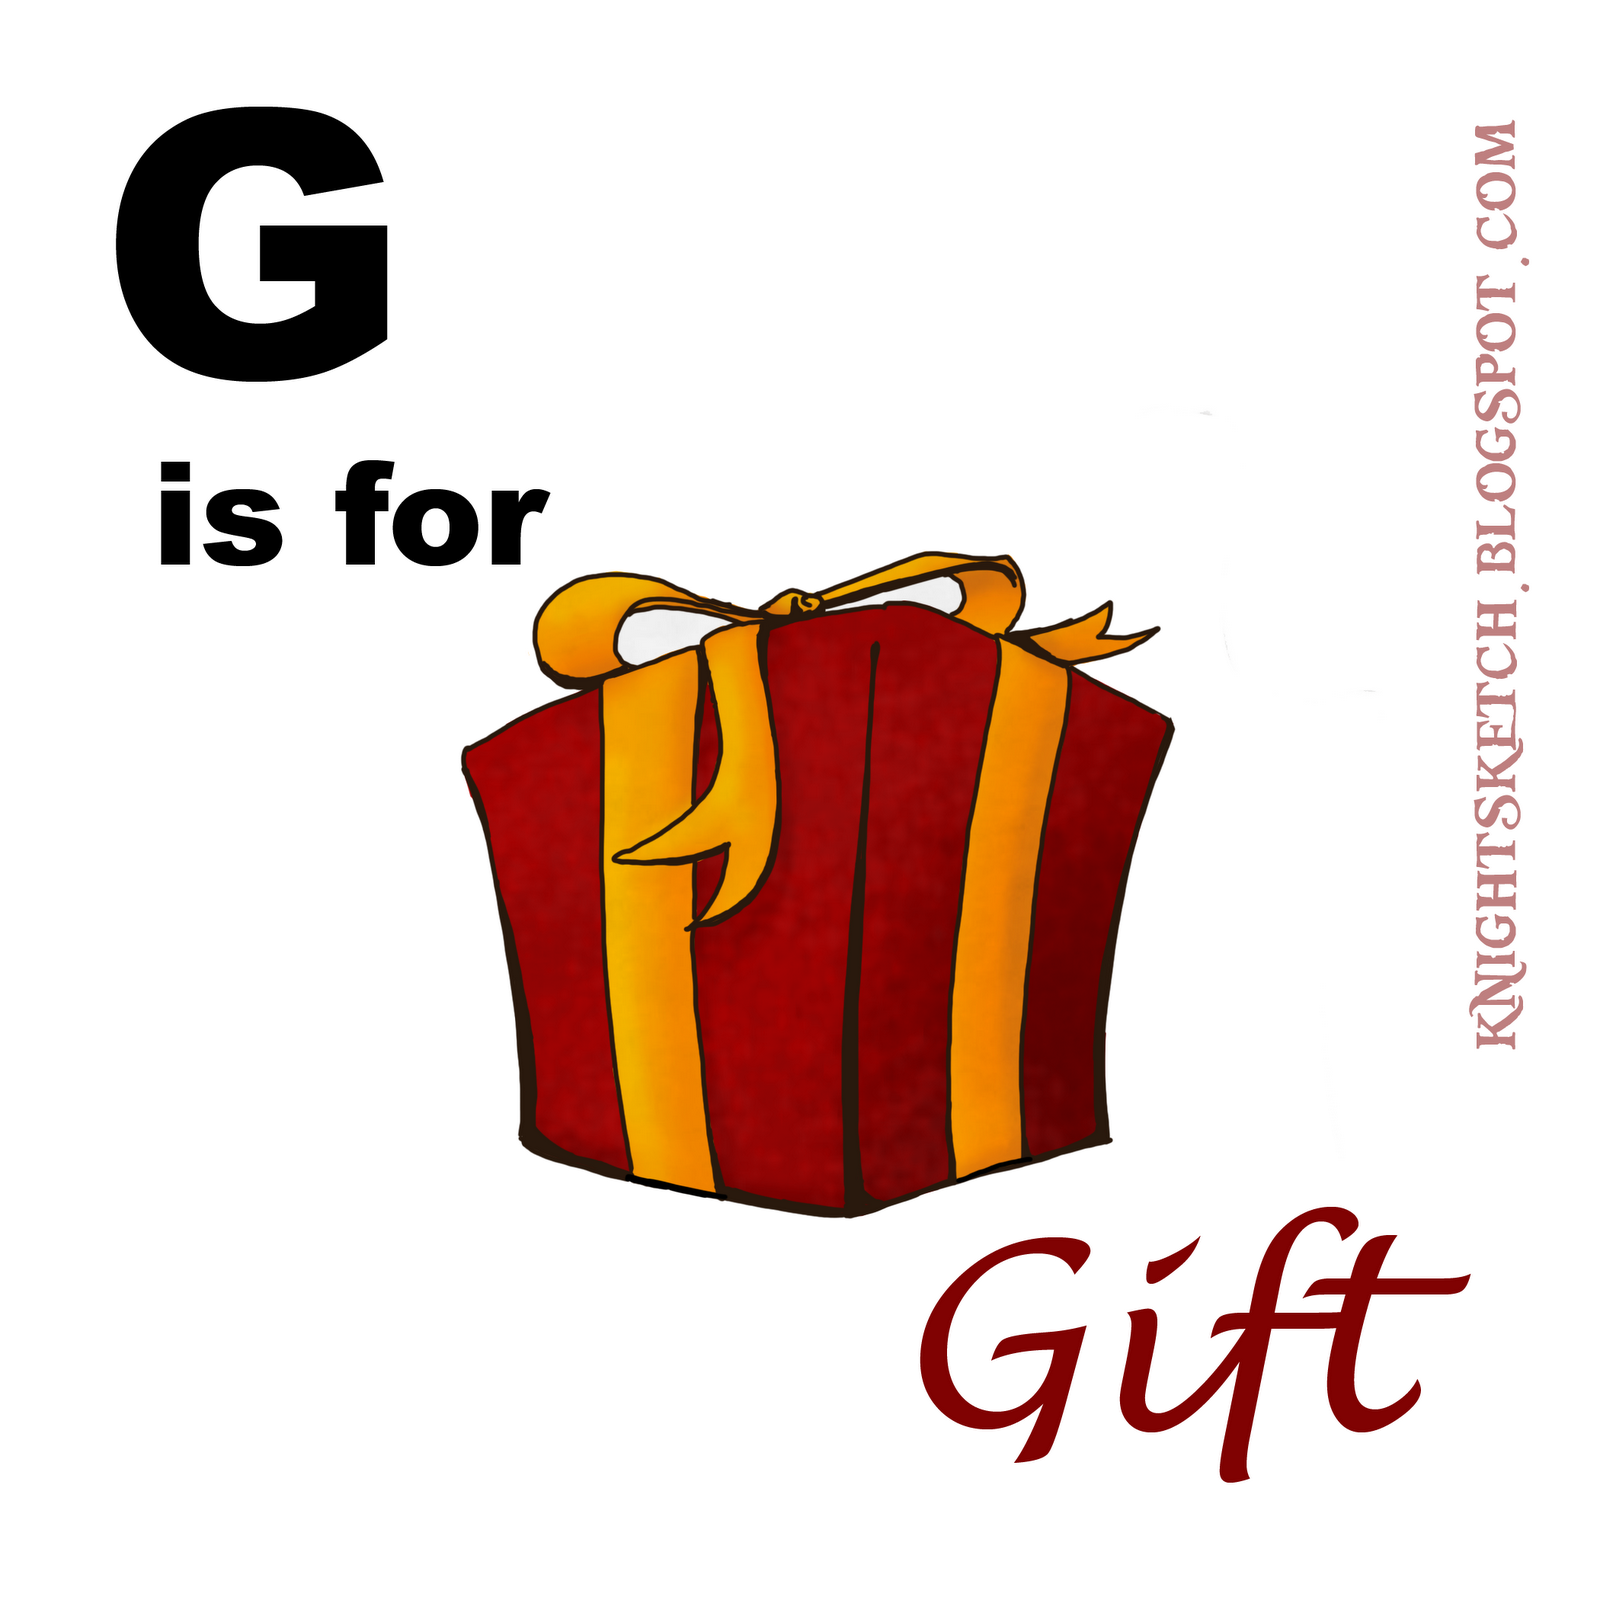 Http Knightsketch Blogspot Com 2012 01 G Is For Gift Html